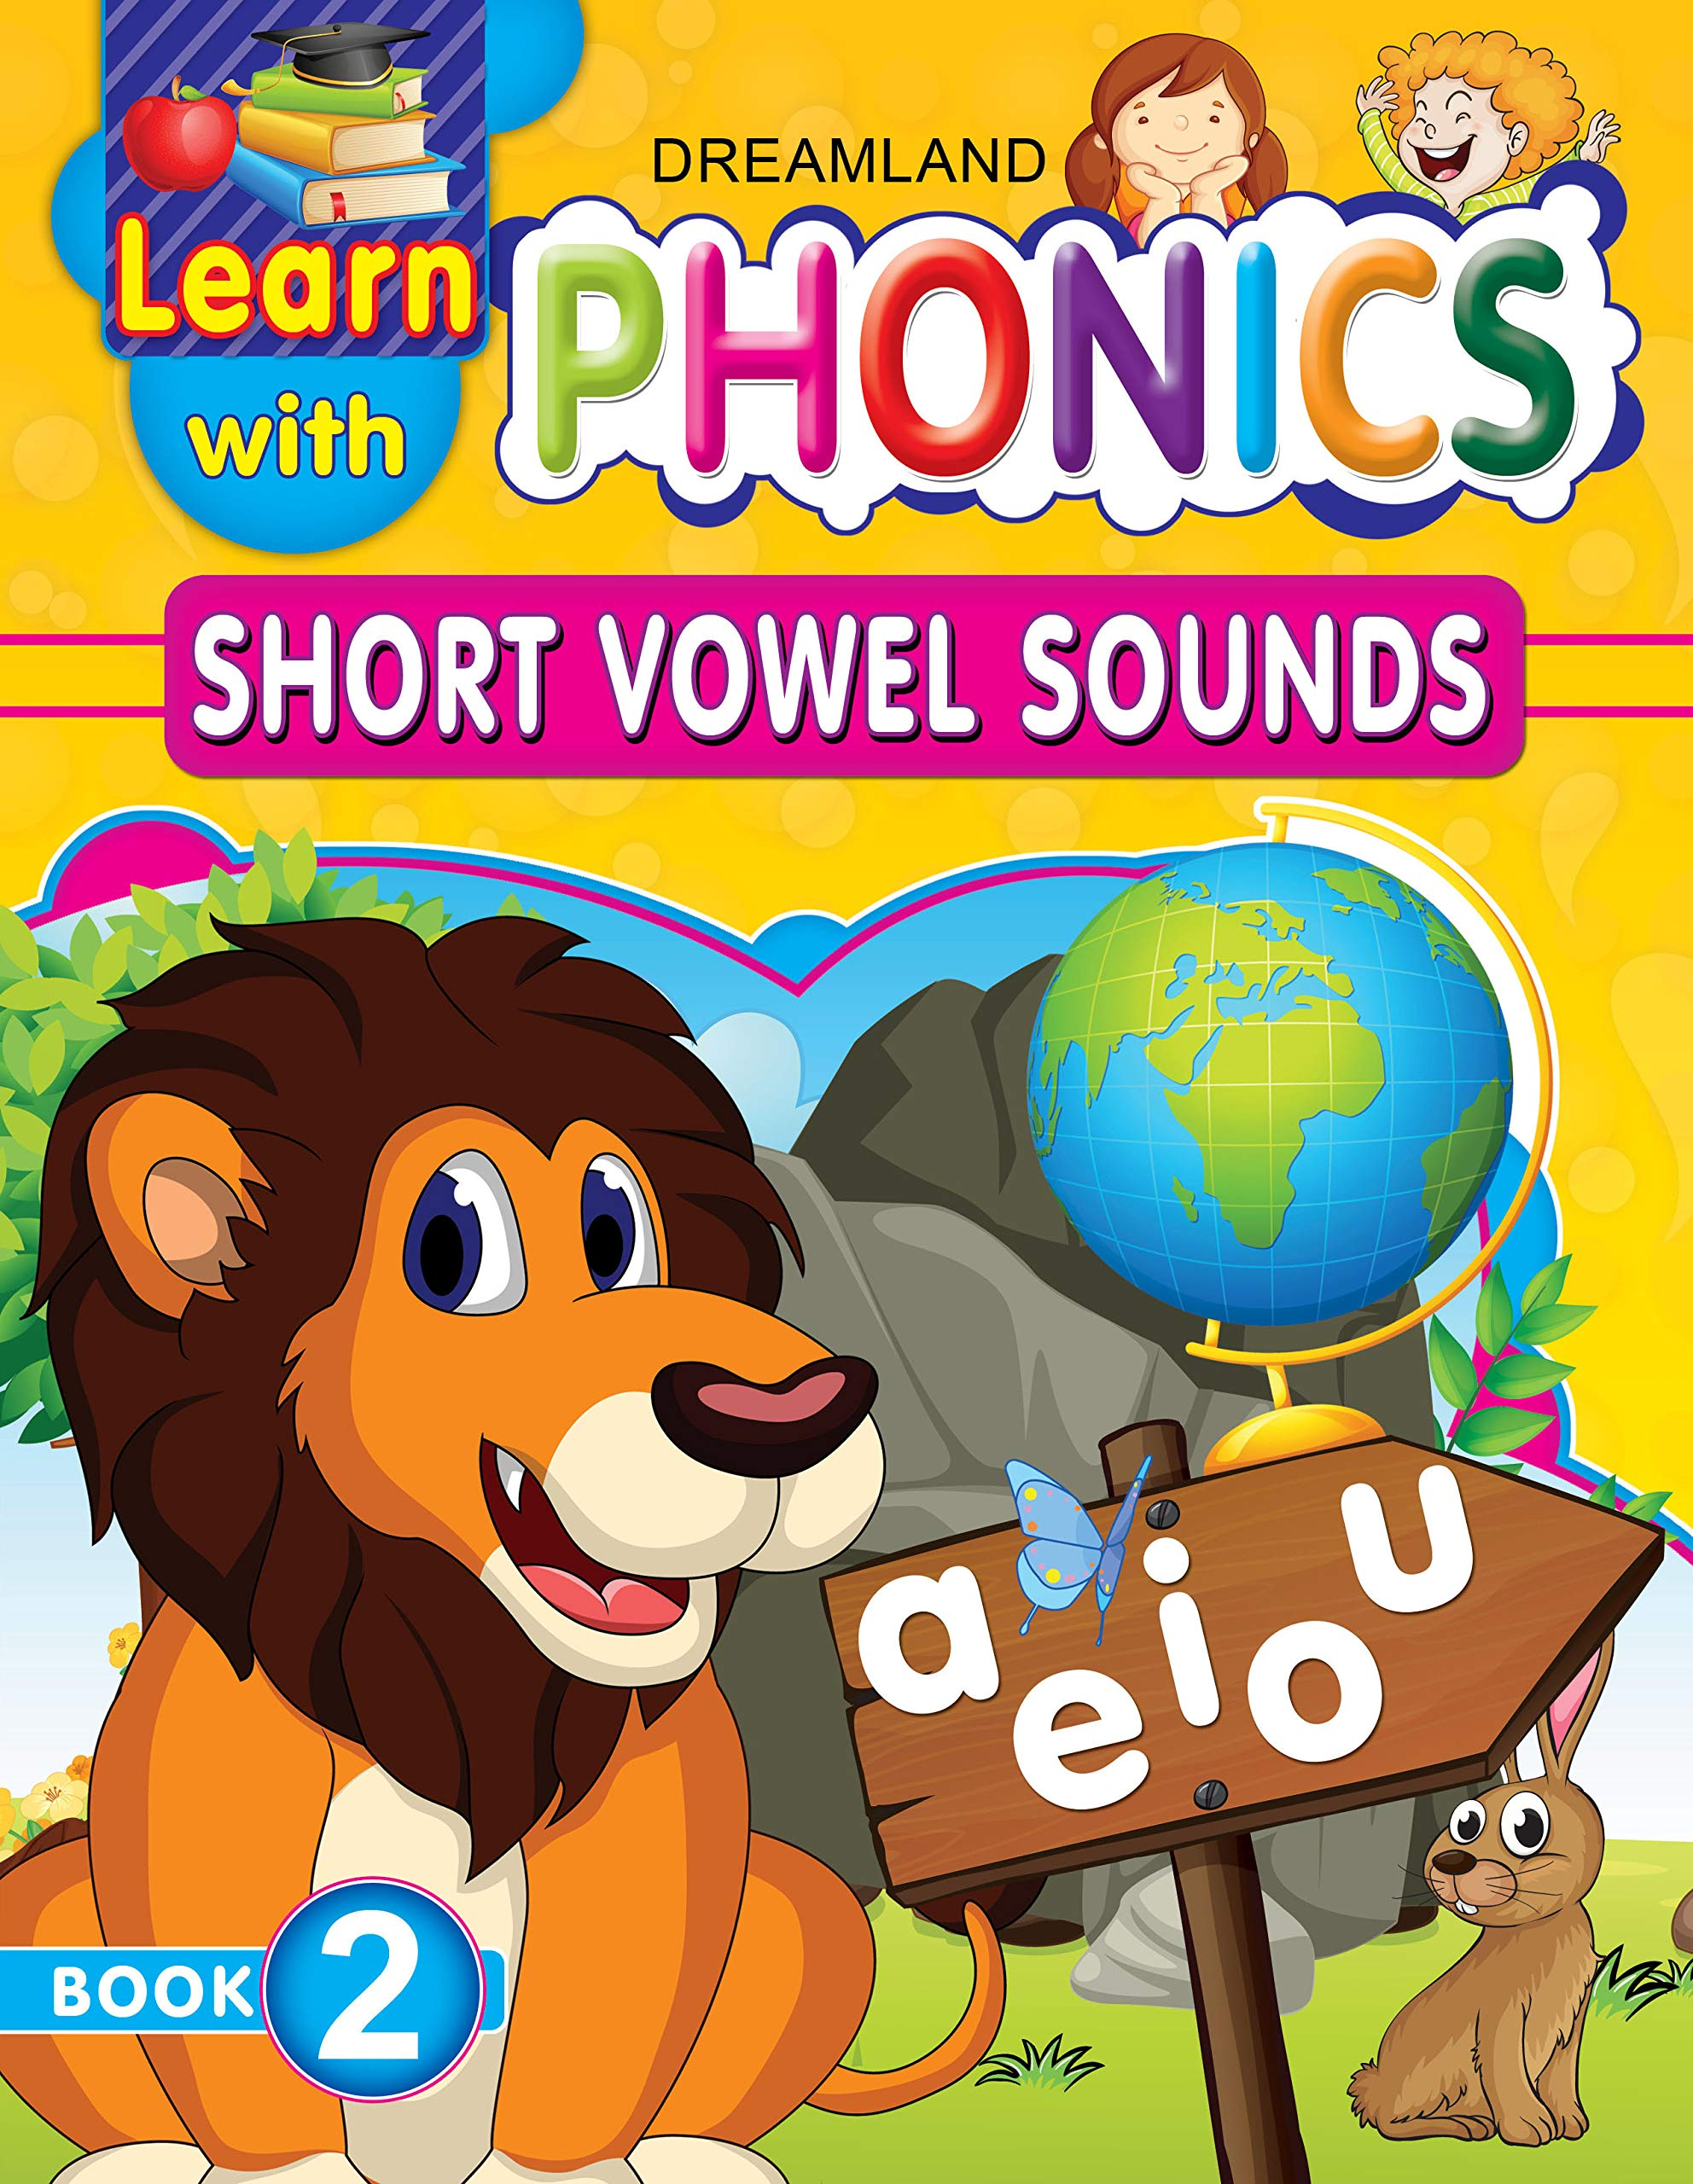 Learn with Phonics (Short Vowel Sounds)